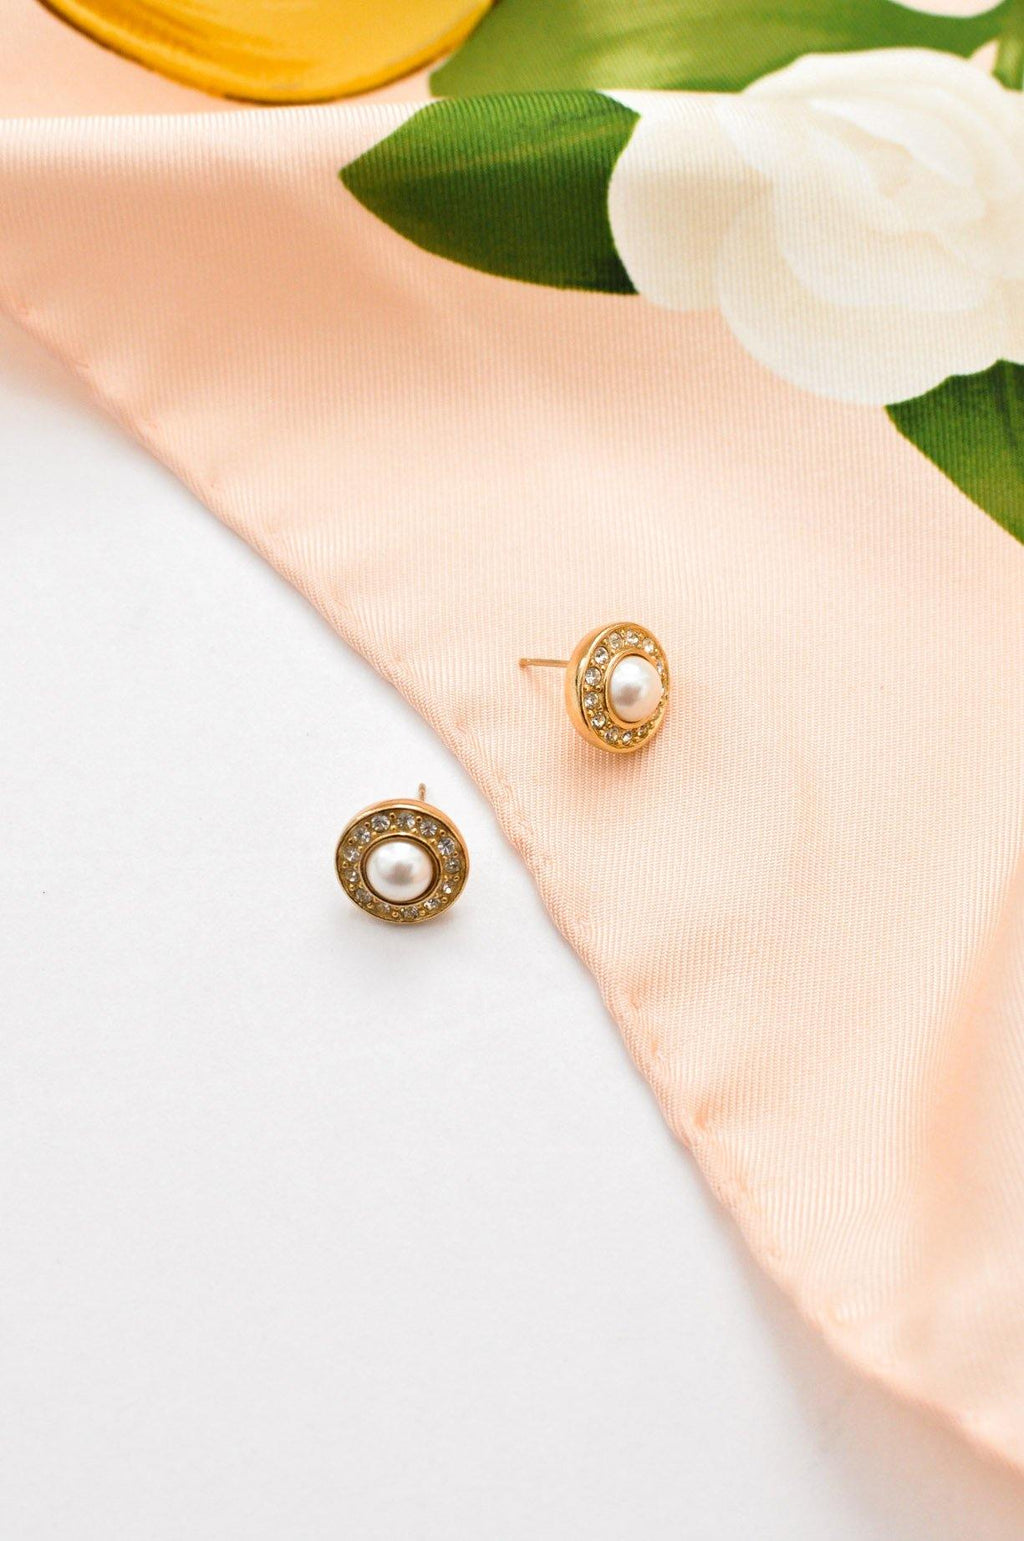 Christian Dior Mini Pearl Pierced Earrings